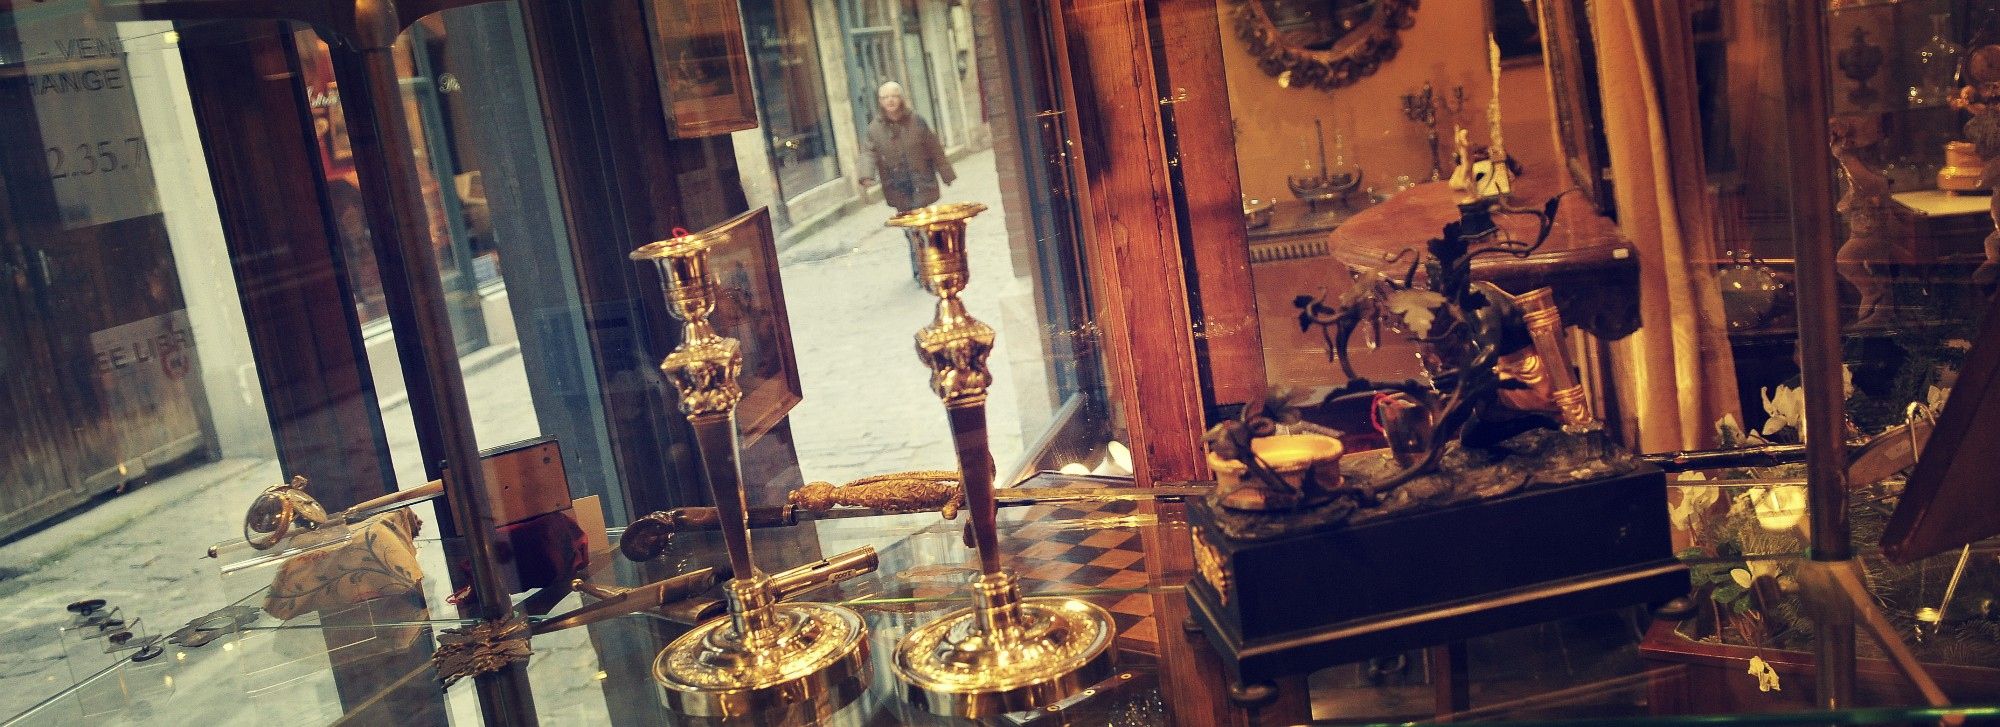 Antiques Dealers in Rouen & Art Galleries